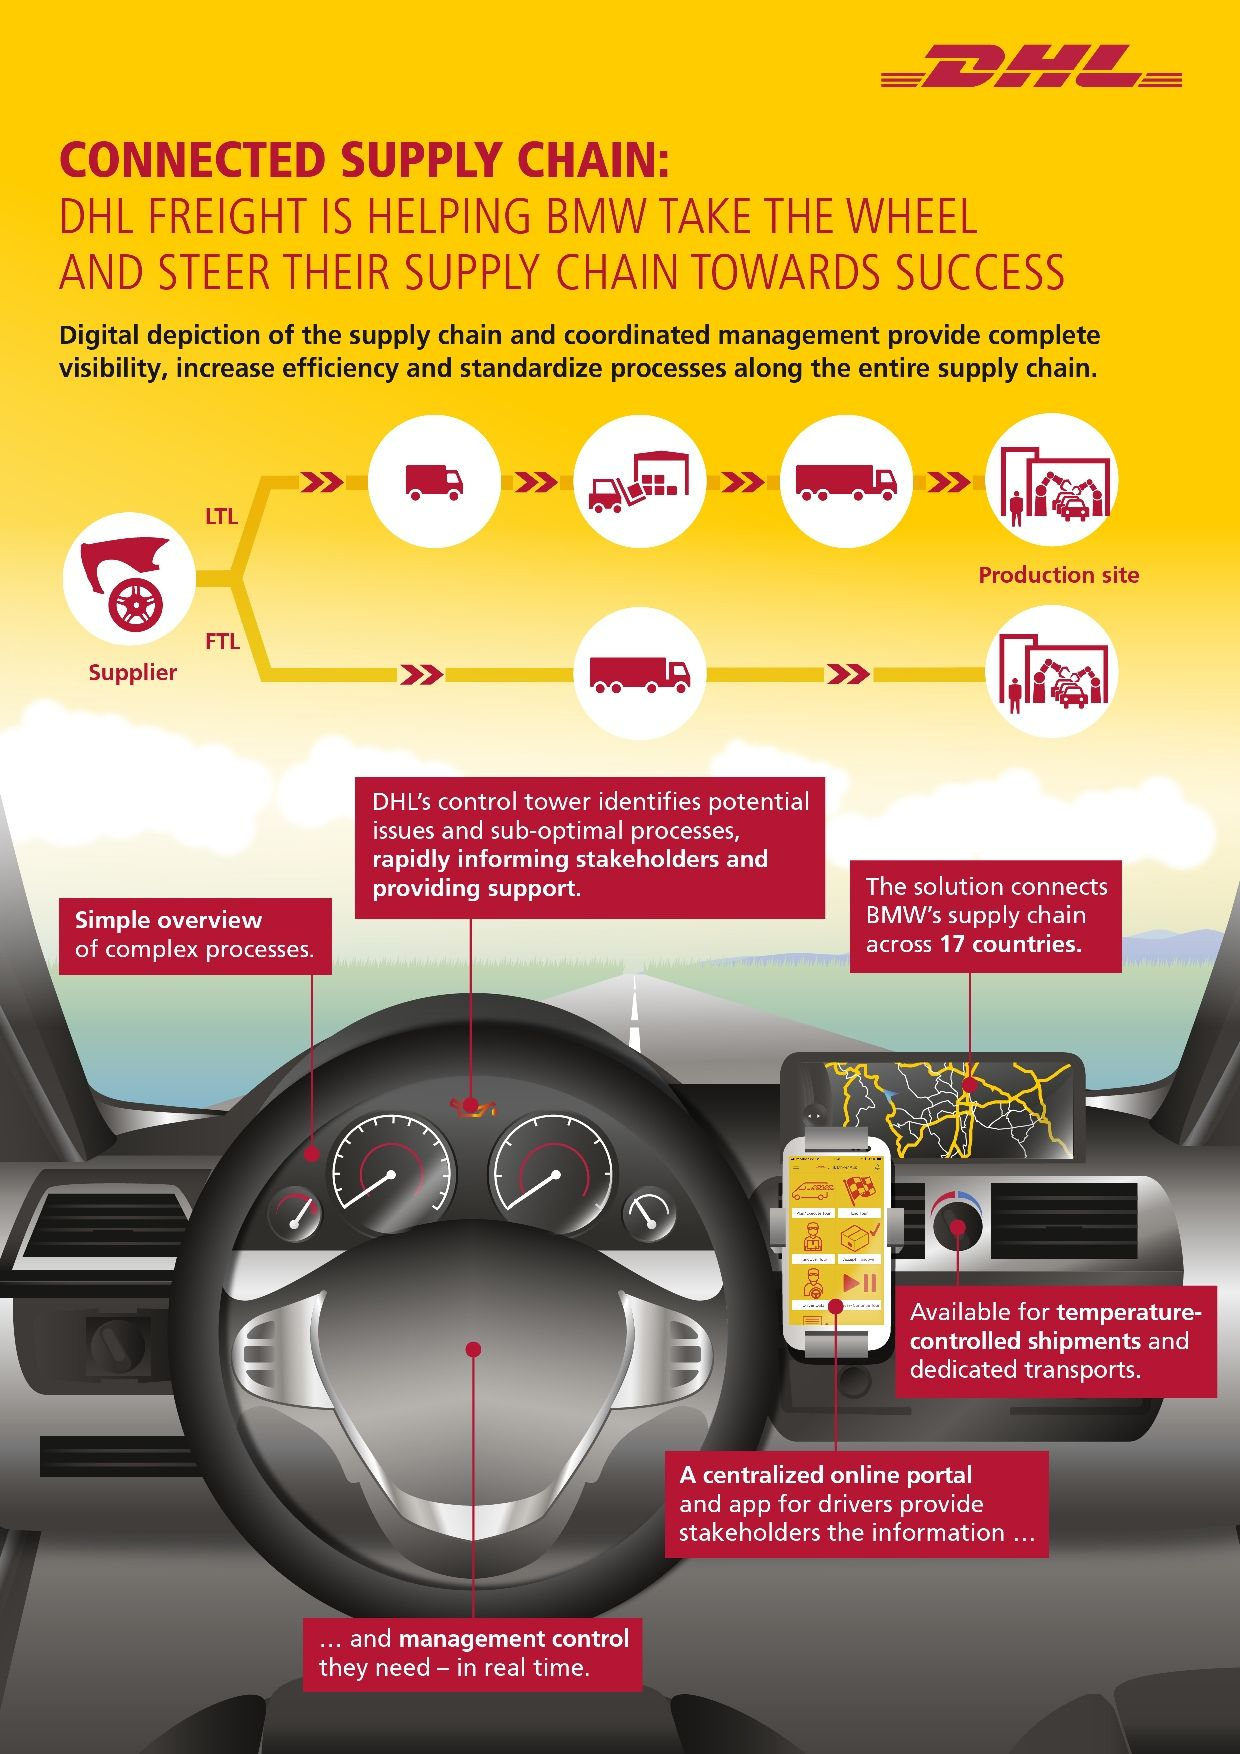 DHL connected supply chain